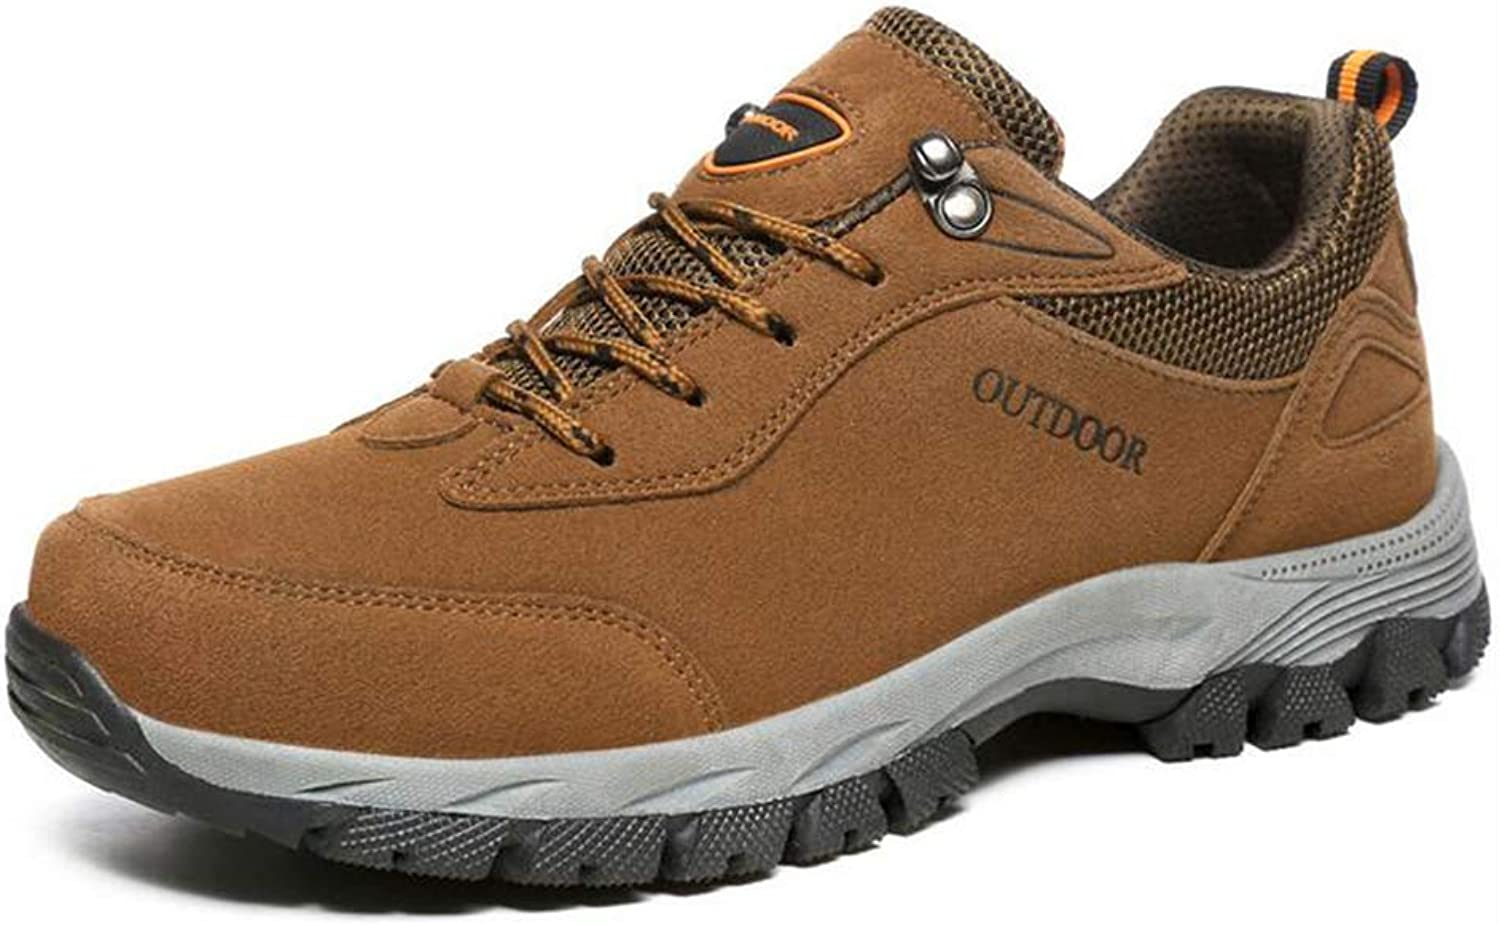 Y-H Men's shoes, Fall Winter Outdoor Hiking shoes Large Size Trekking Travel shoes Comfort Sneakers Cycling shoes (color   Brown, Size   49)